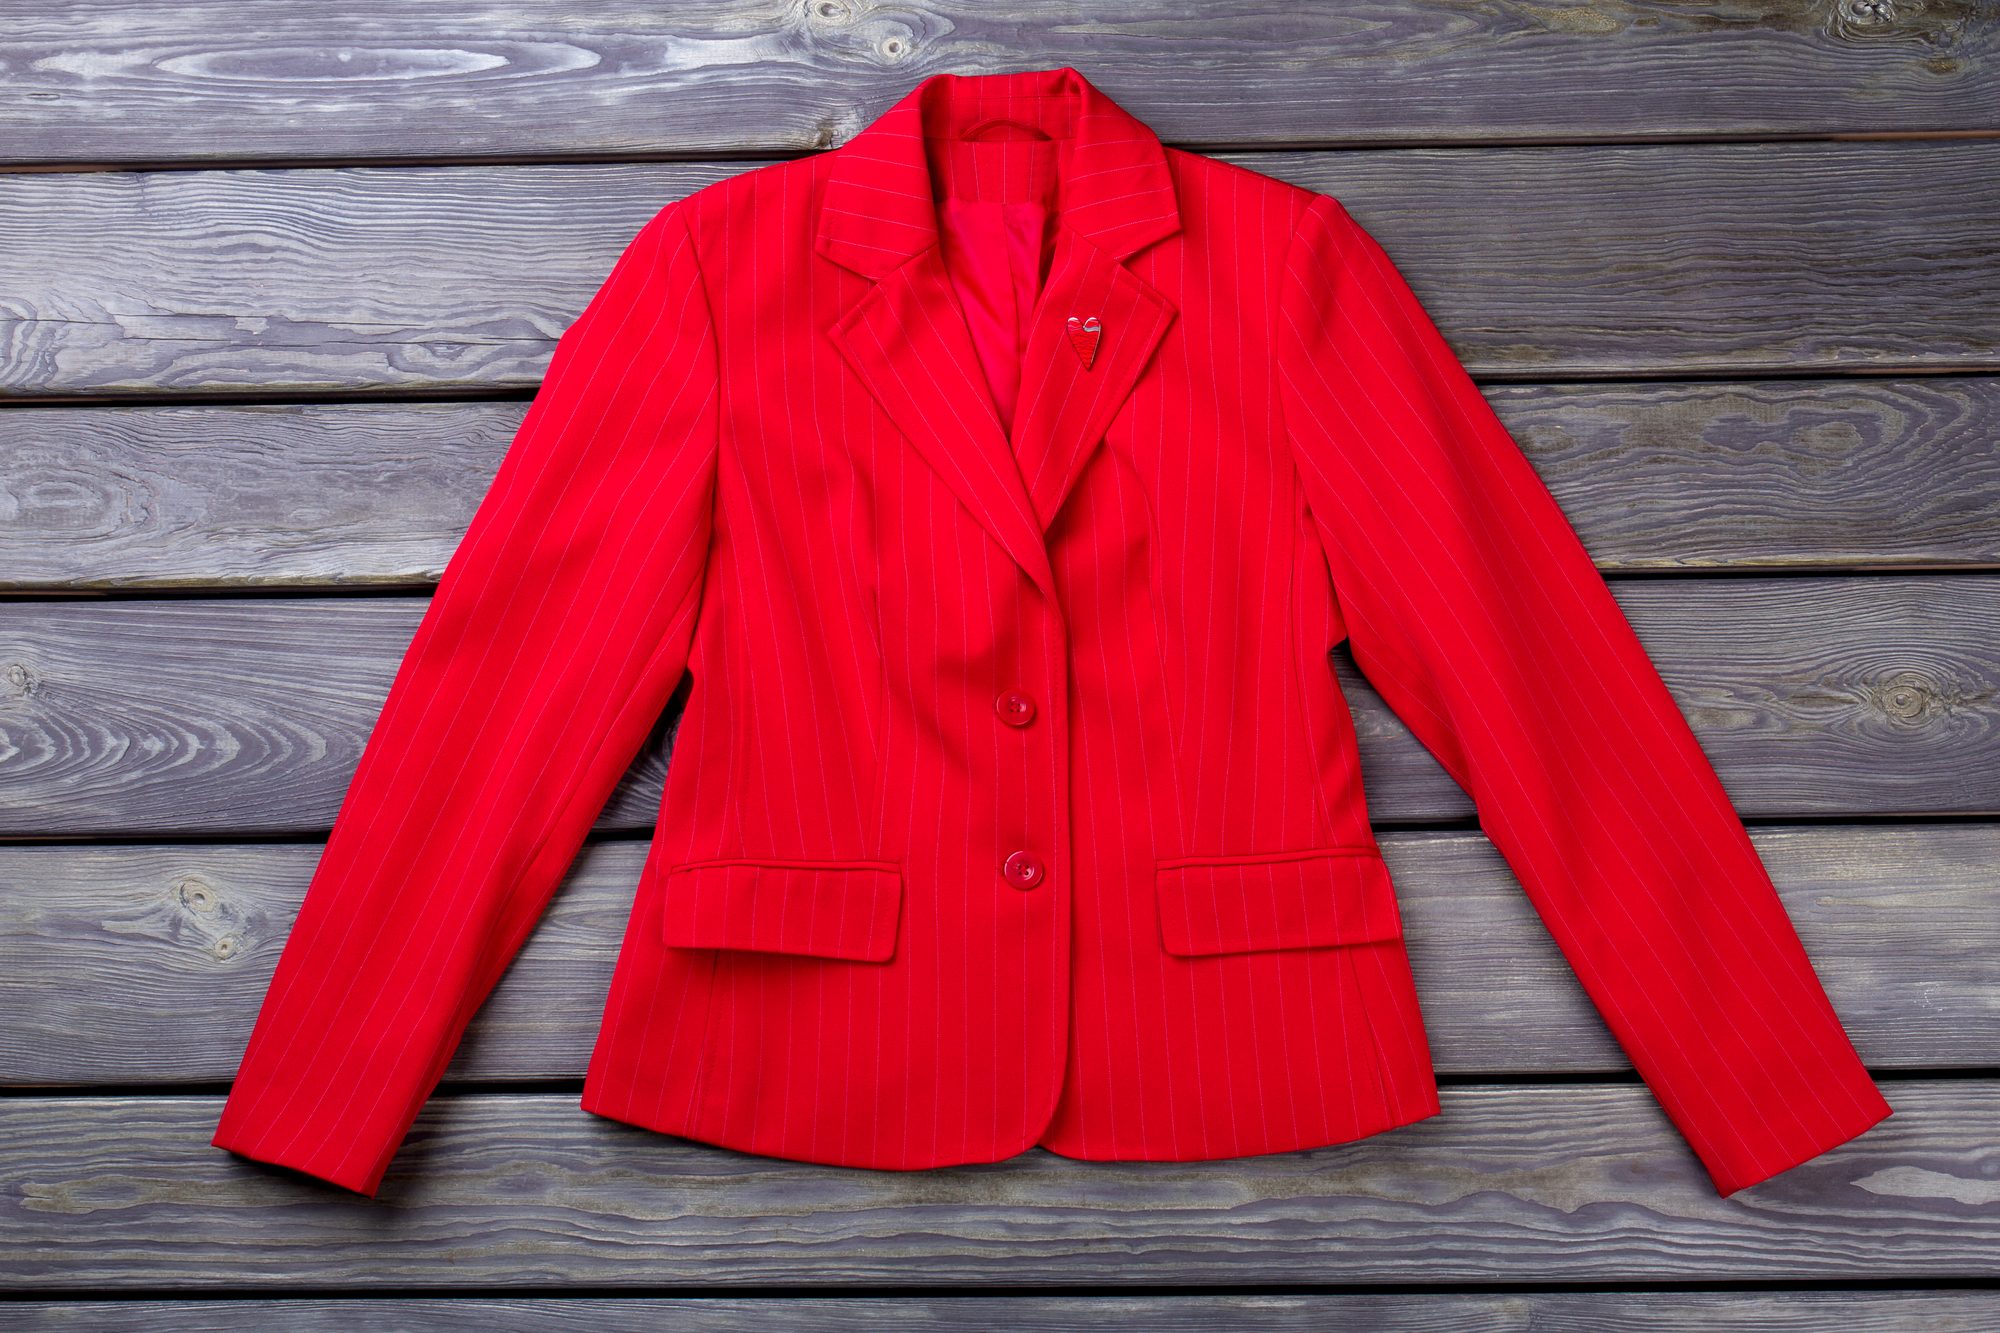 Flat lay red jacket. Women's suit, grey wooden surface background.